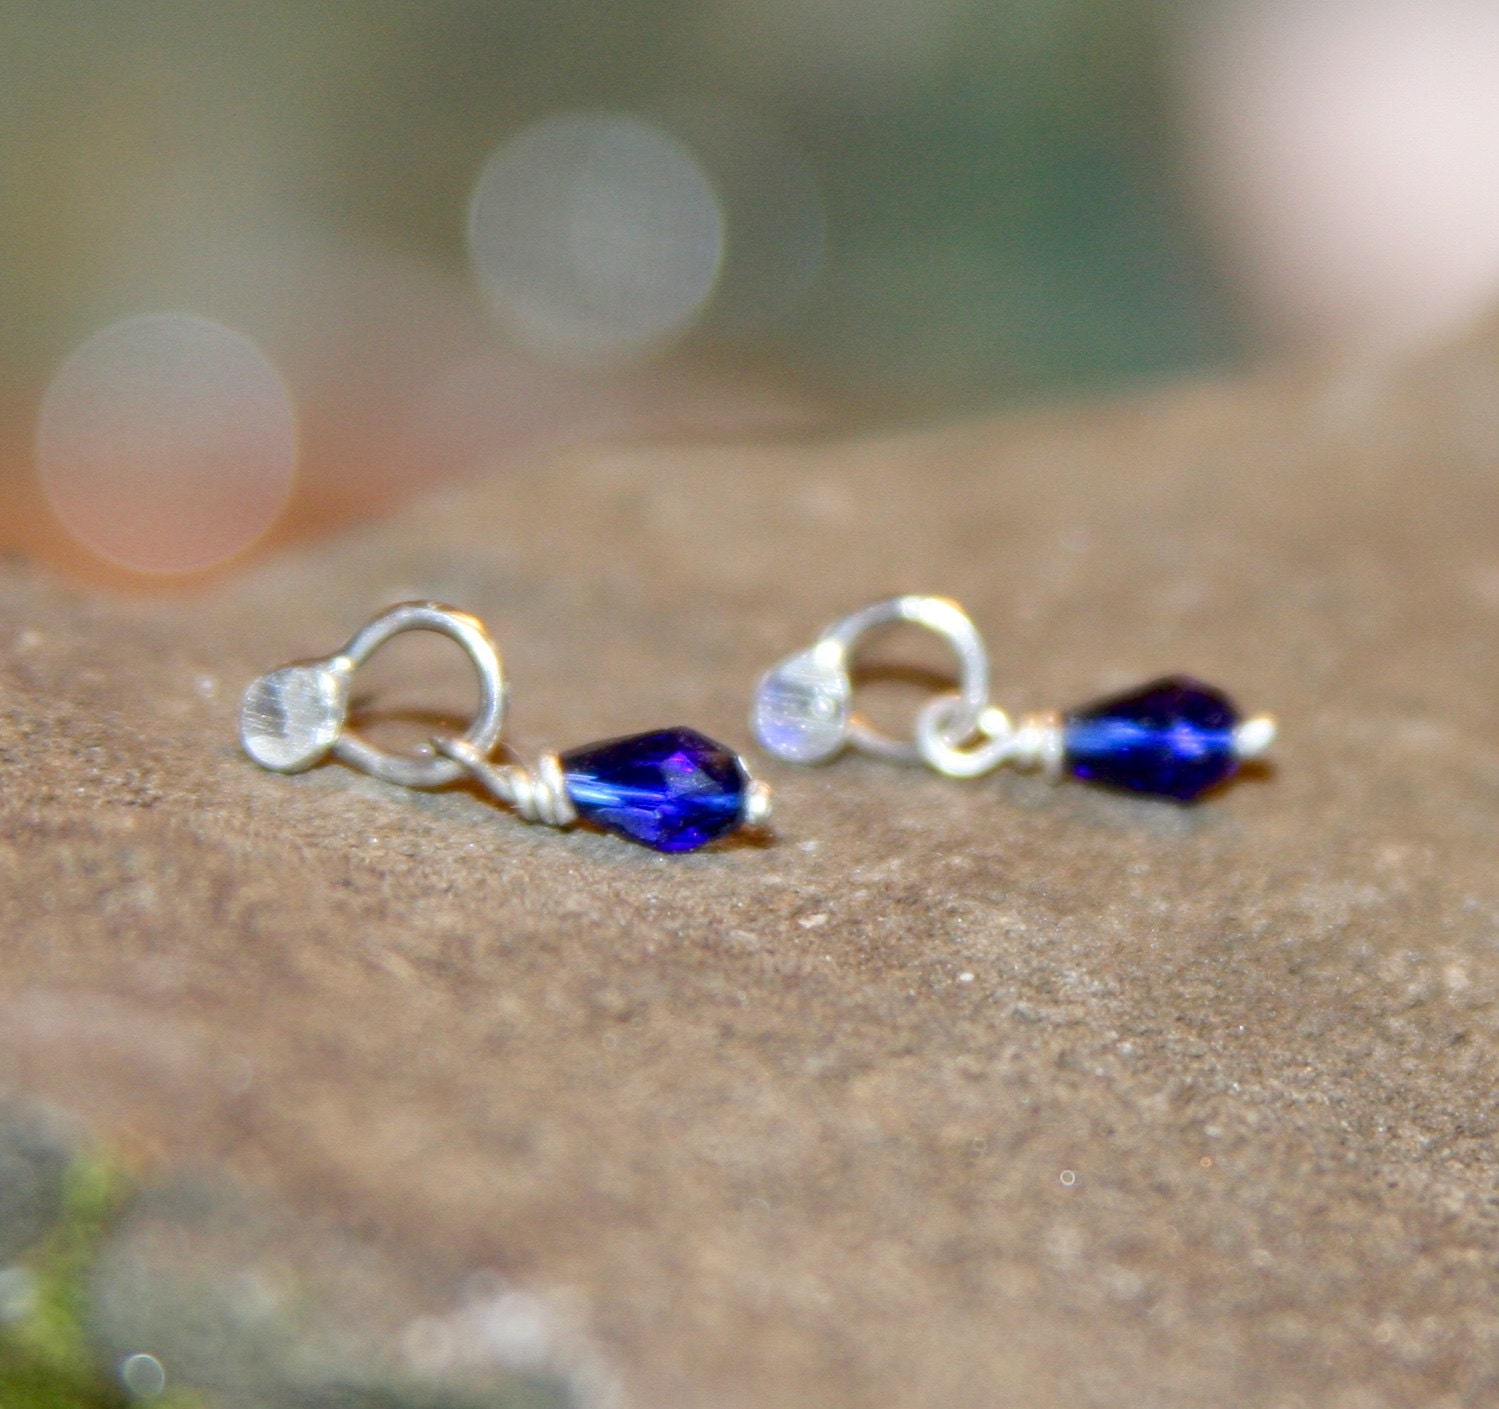 Small Blue Earrings: Small Blue Crystal Silver Earrings Tiny Blue Stud Earrings